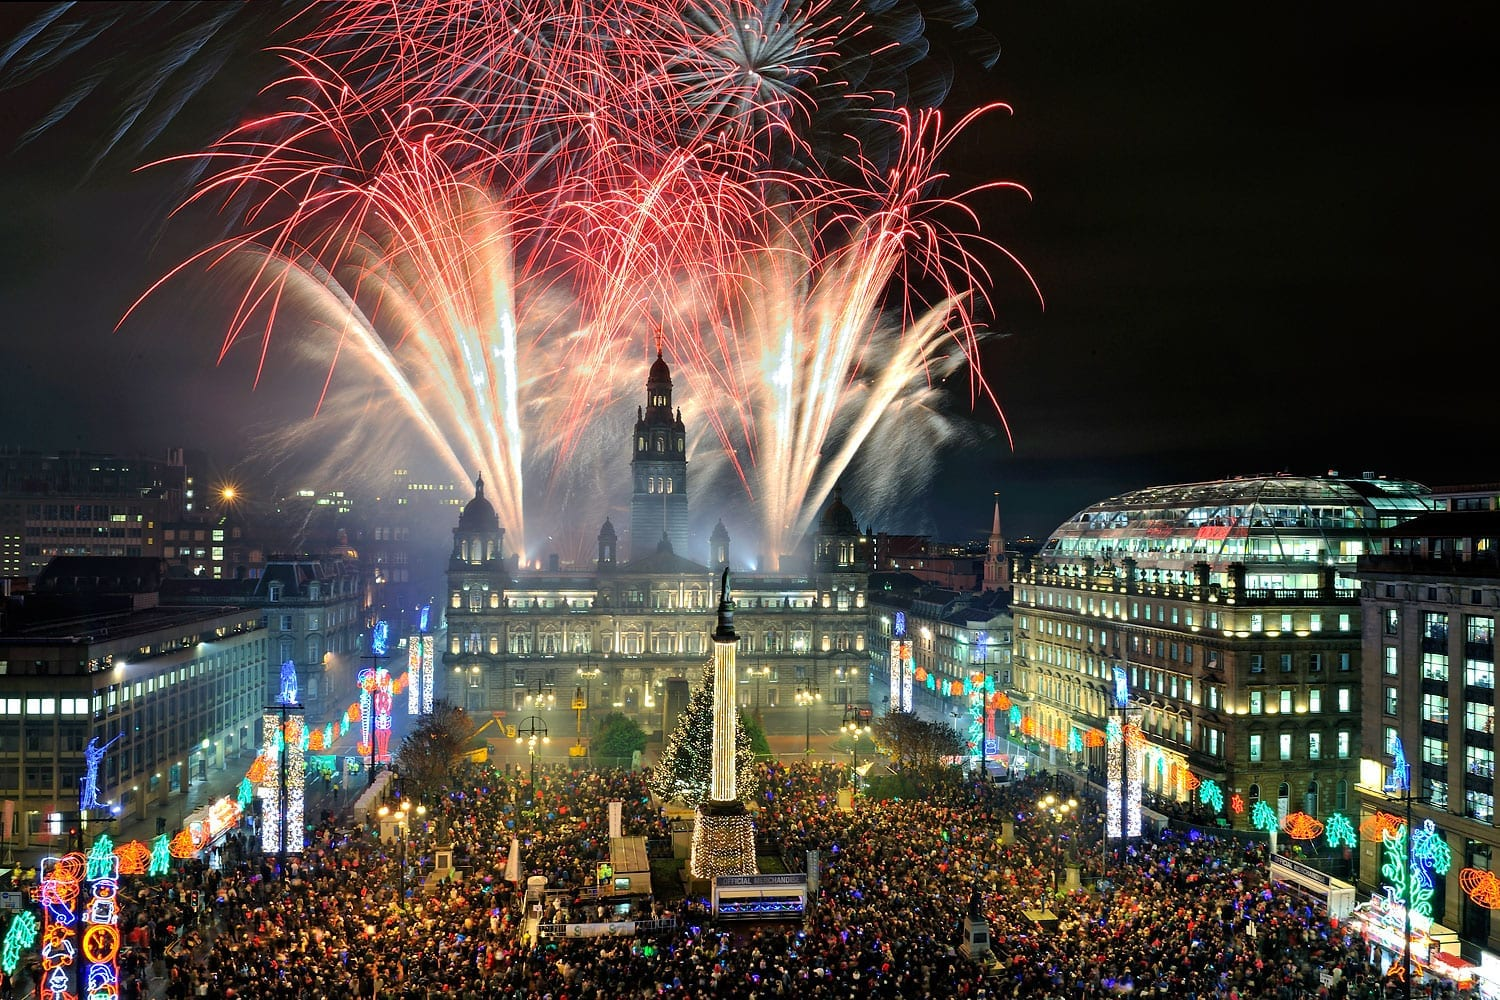 STOKE TRAVEL'S GUIDE TO HOGMANAY